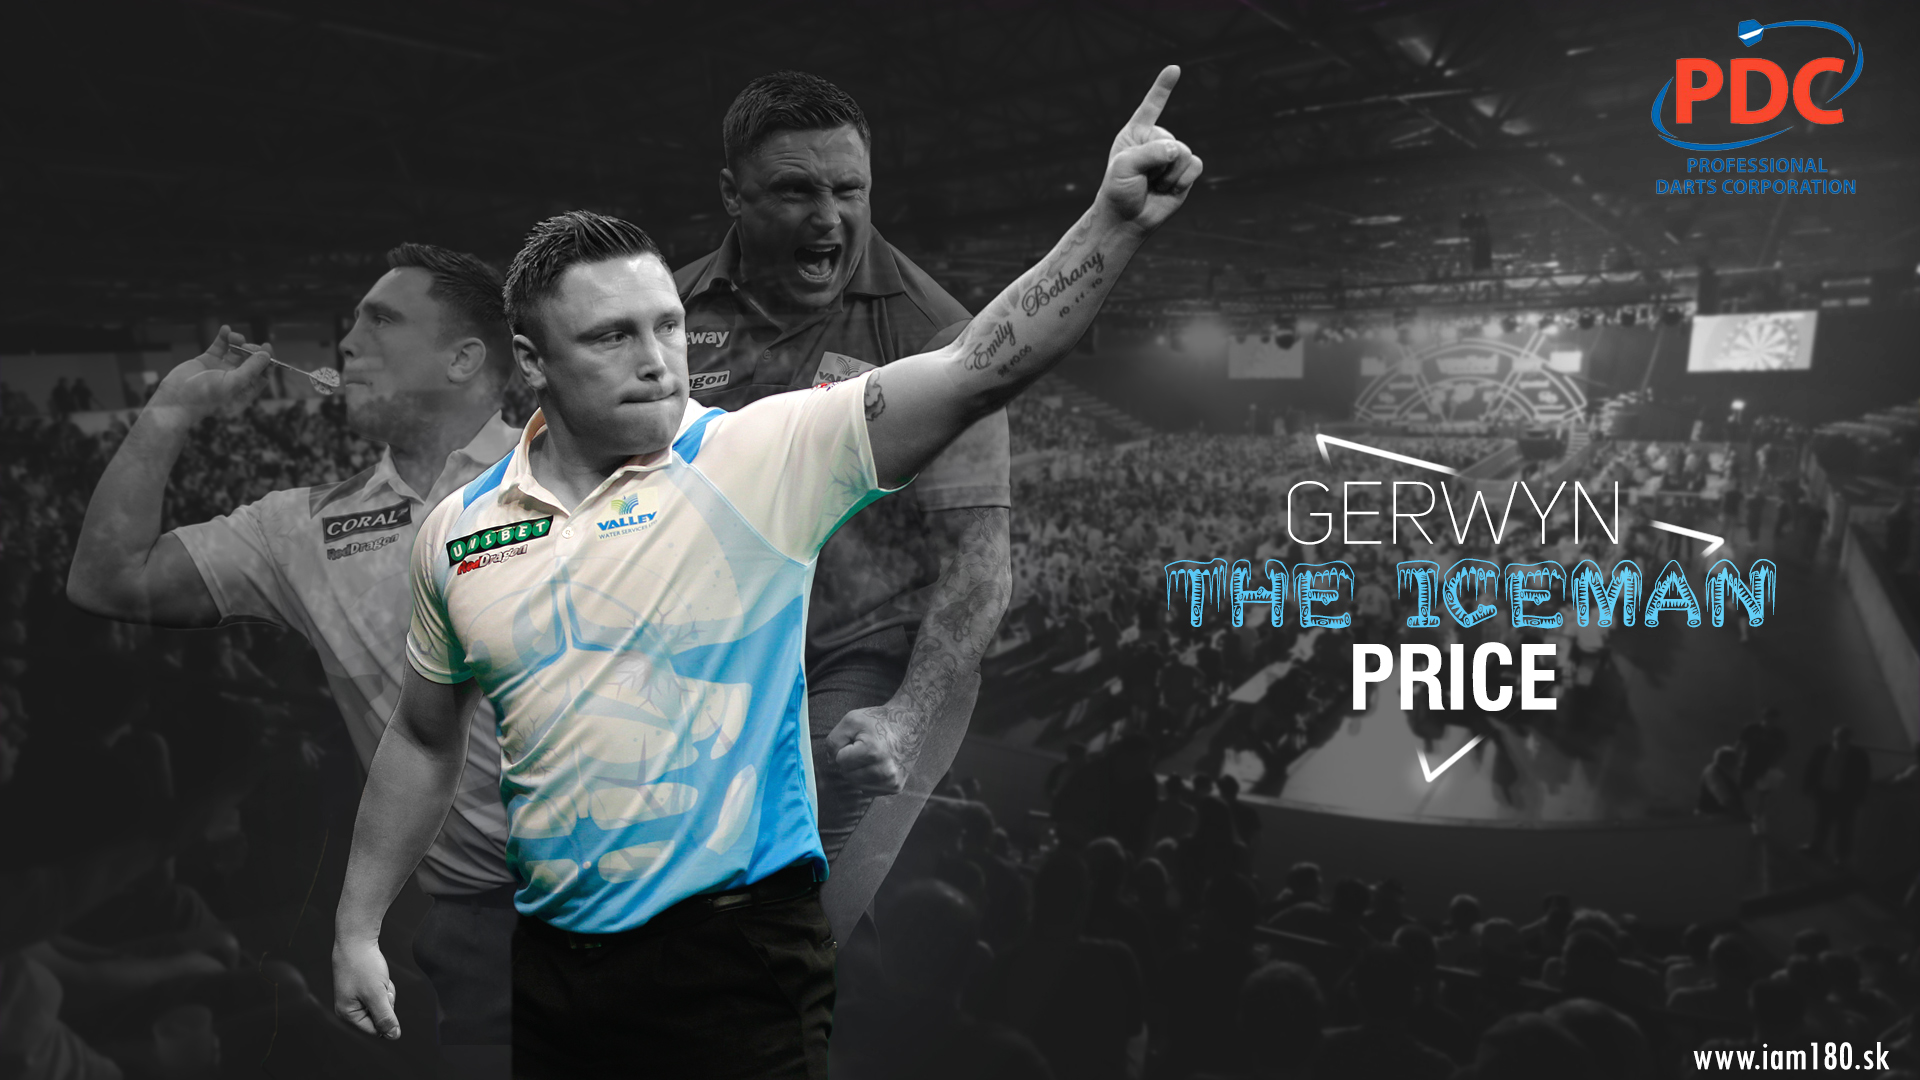 Gerwyn Price Darts Wallpaper